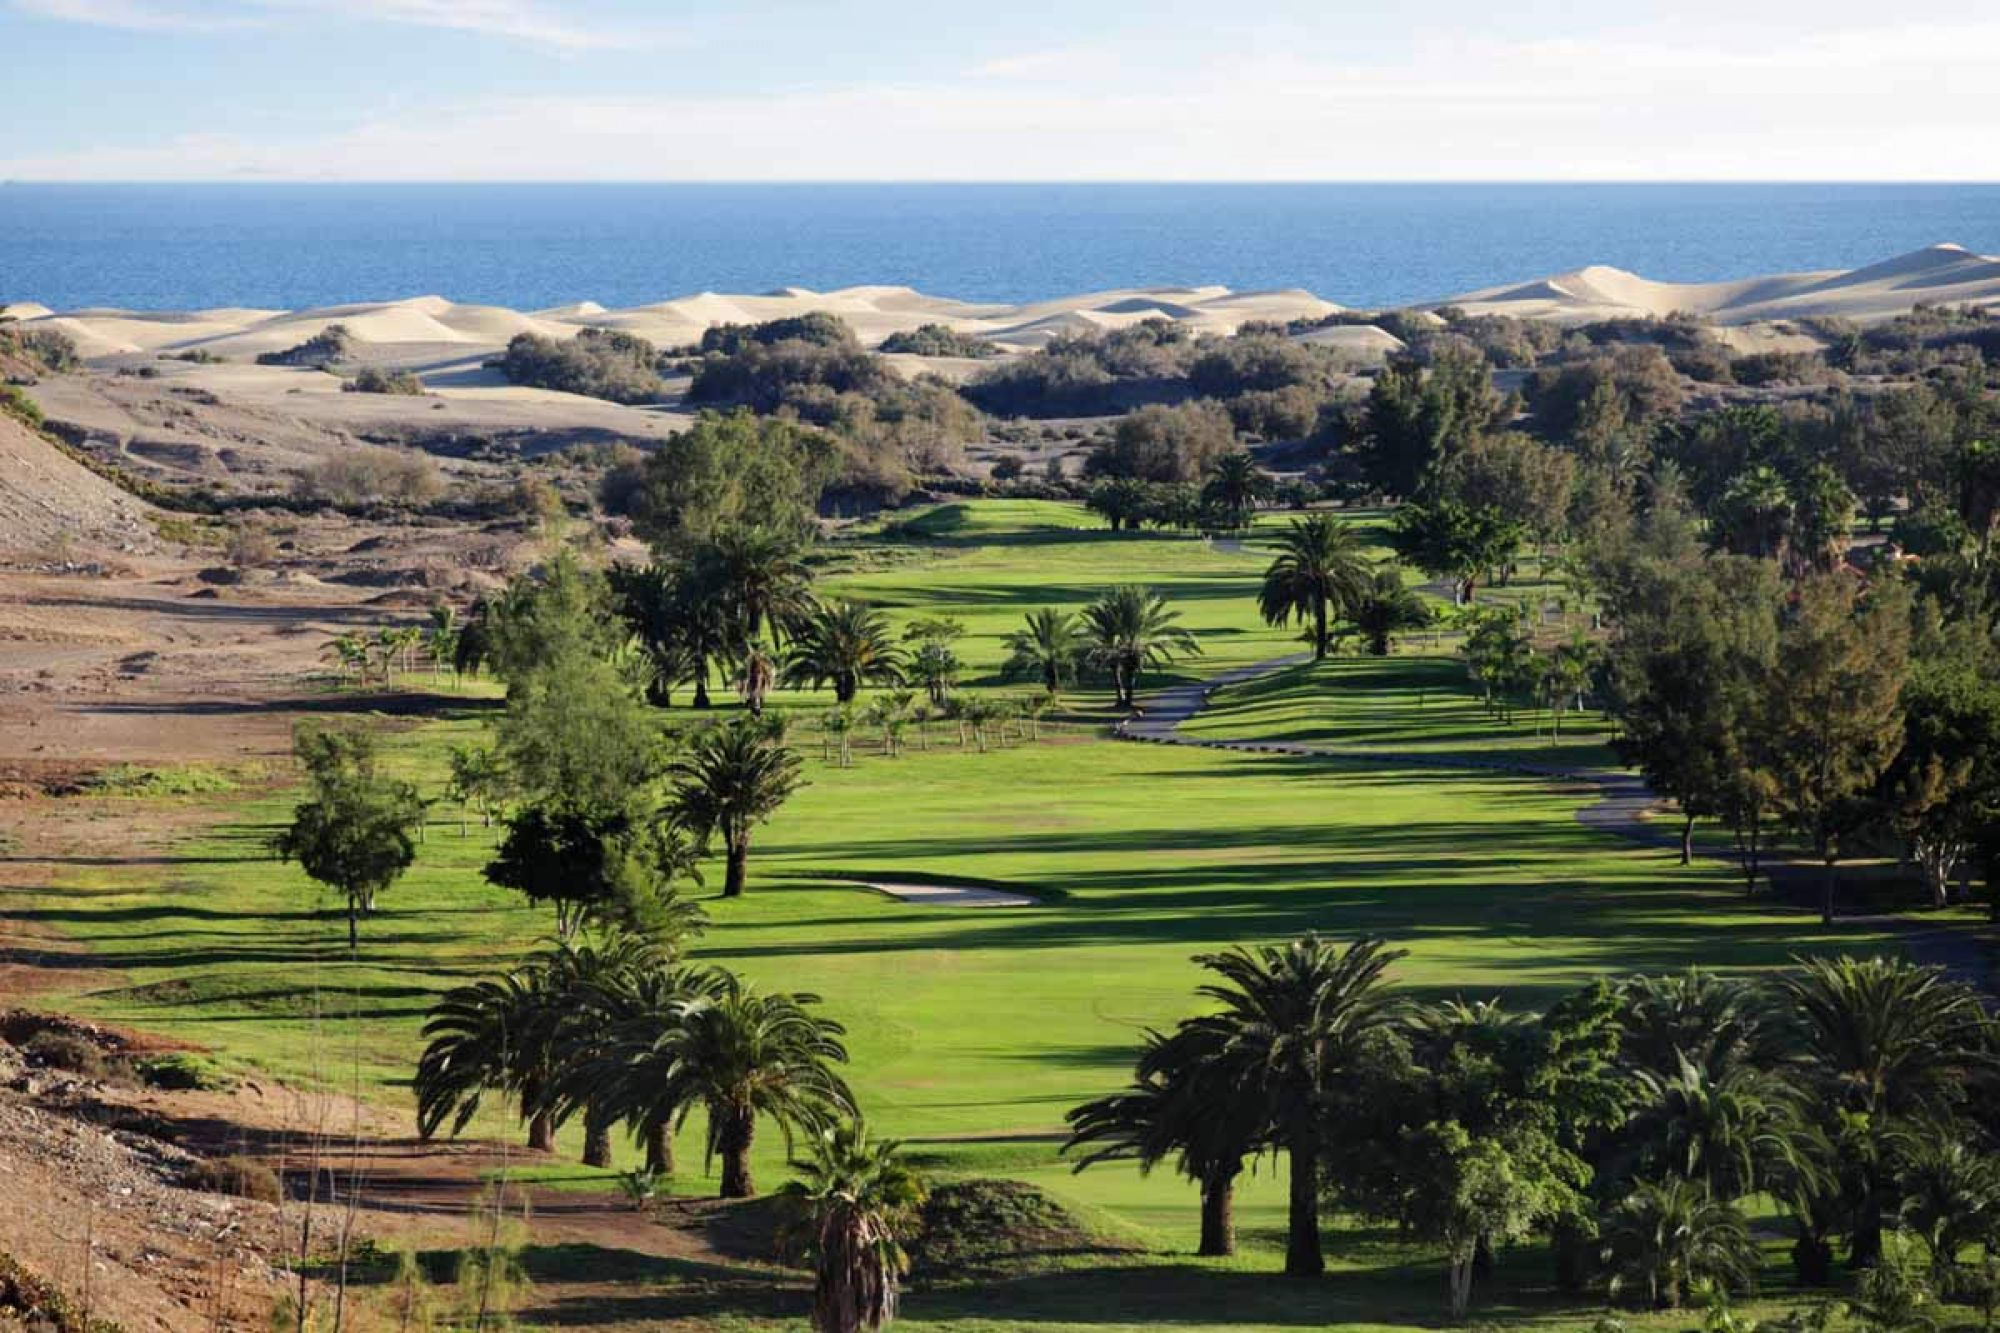 Maspalomas Golf Course provides among the finest golf course in Gran Canaria